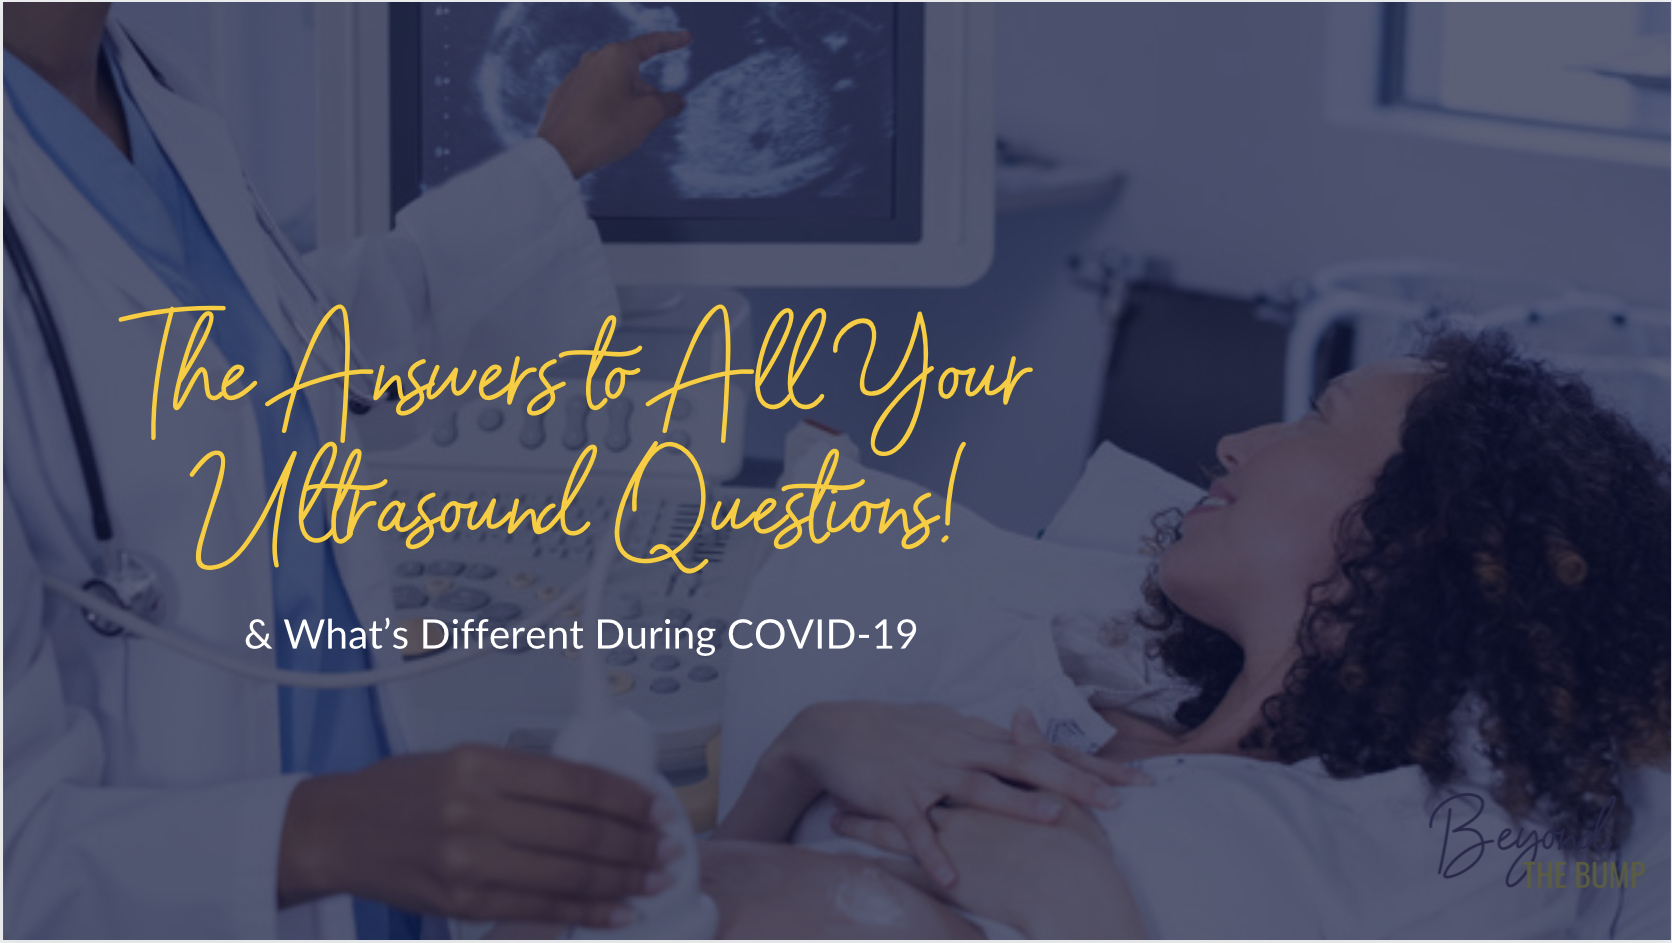 Top 5 questions about ultrasounds answered